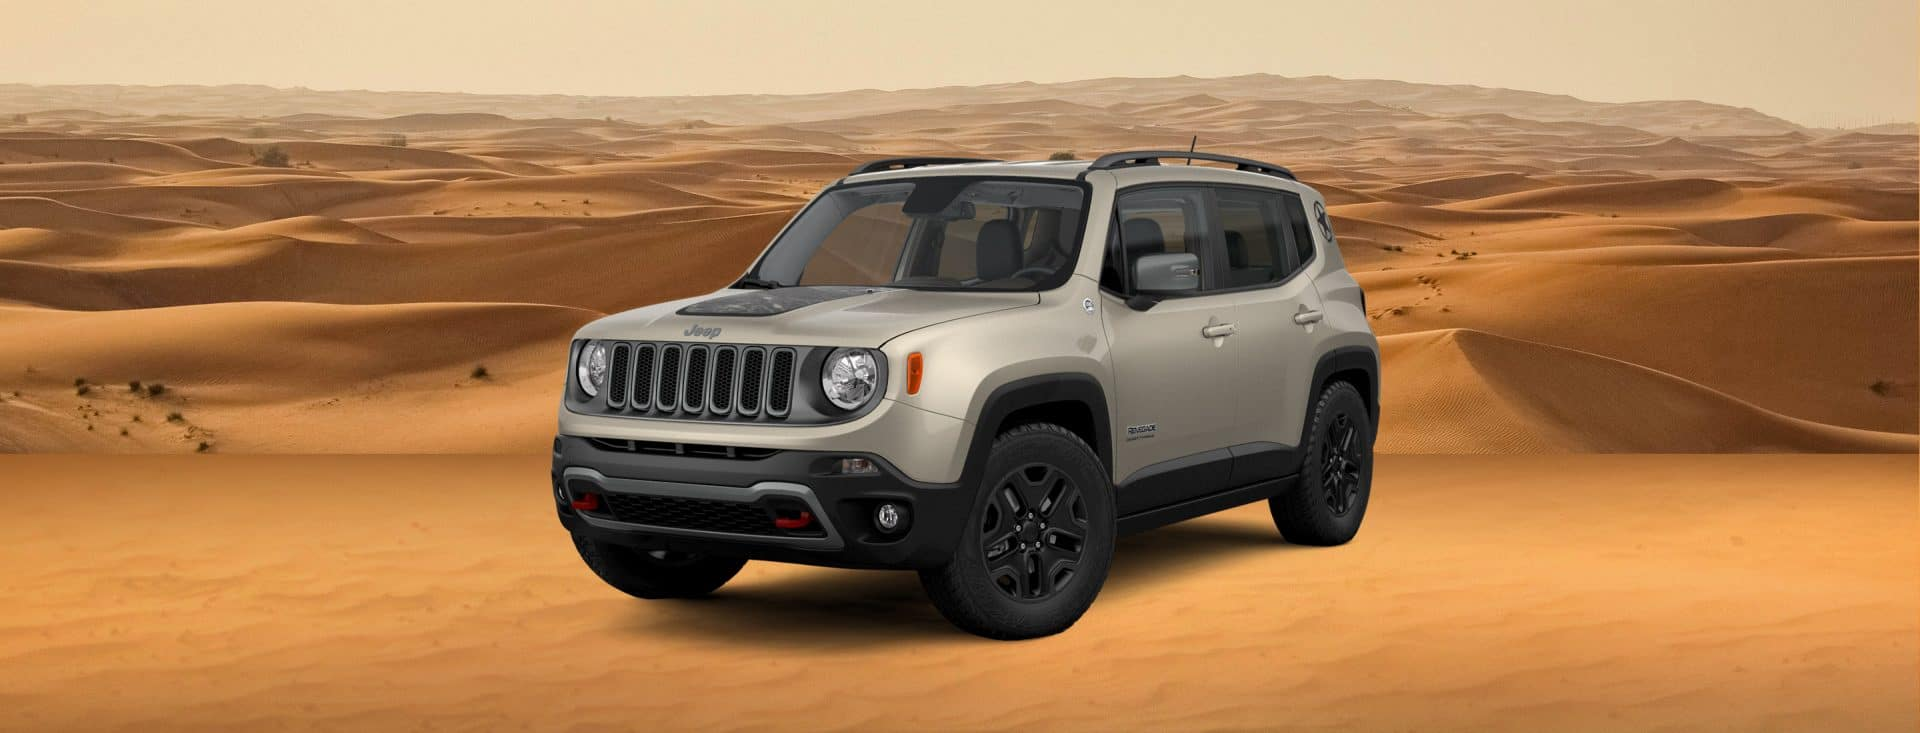 2017 Jeep Renegade Desert Hawk - Limited Edition